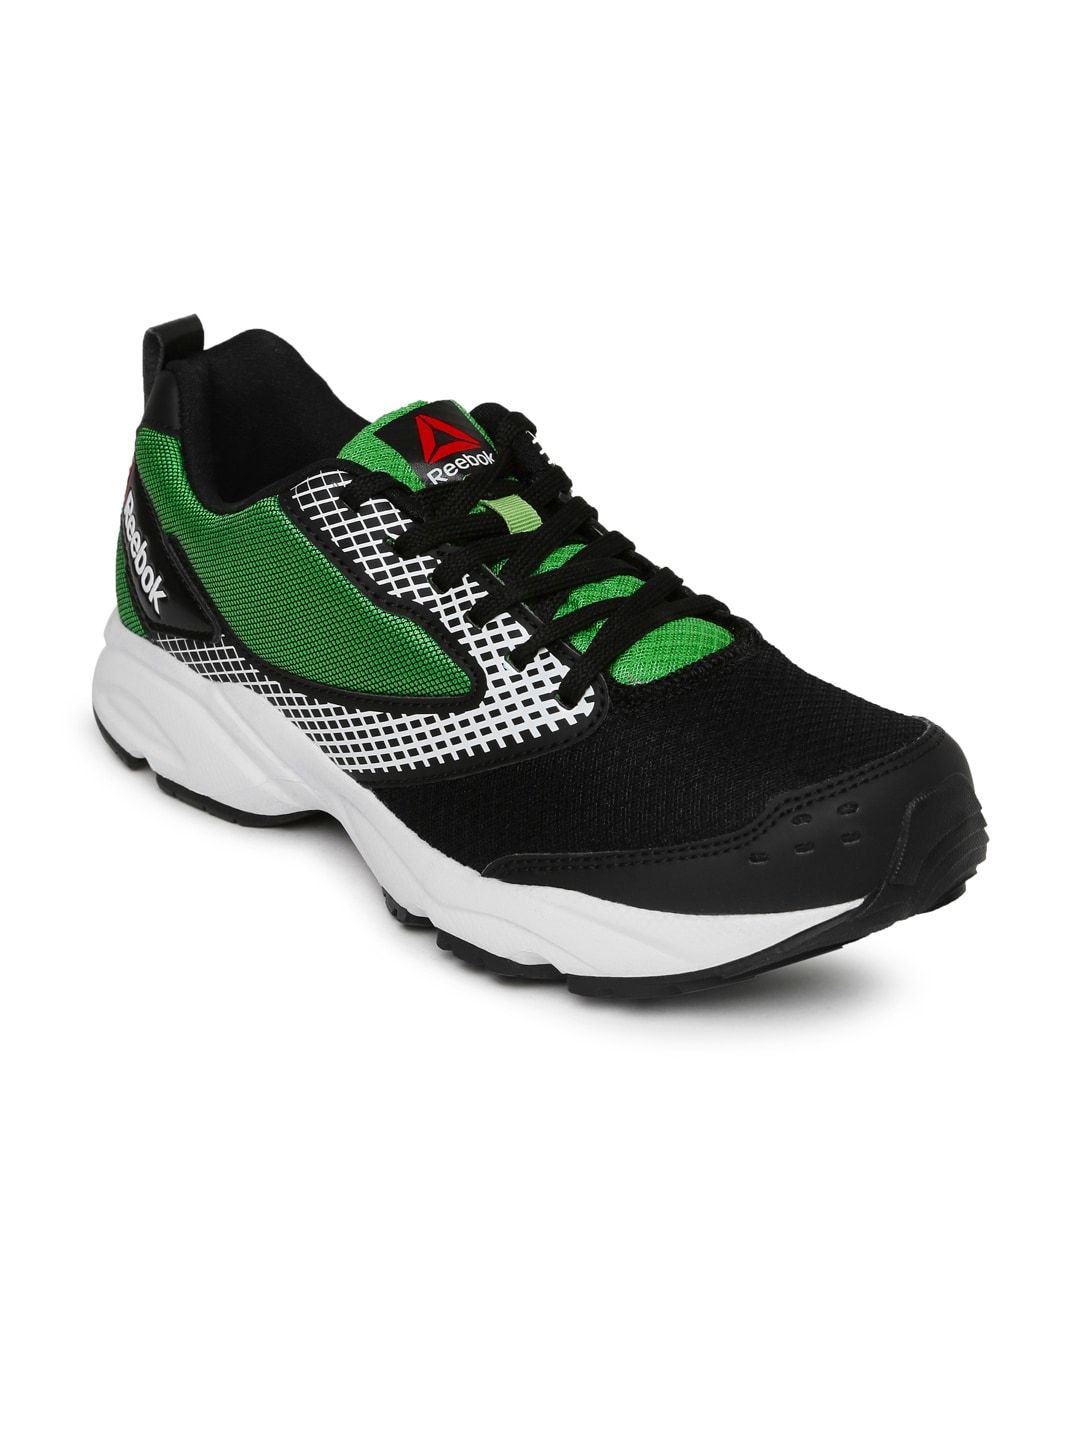 d5e22e096d032d Reebok Shoes - Buy Reebok Shoes For Men   Women Online